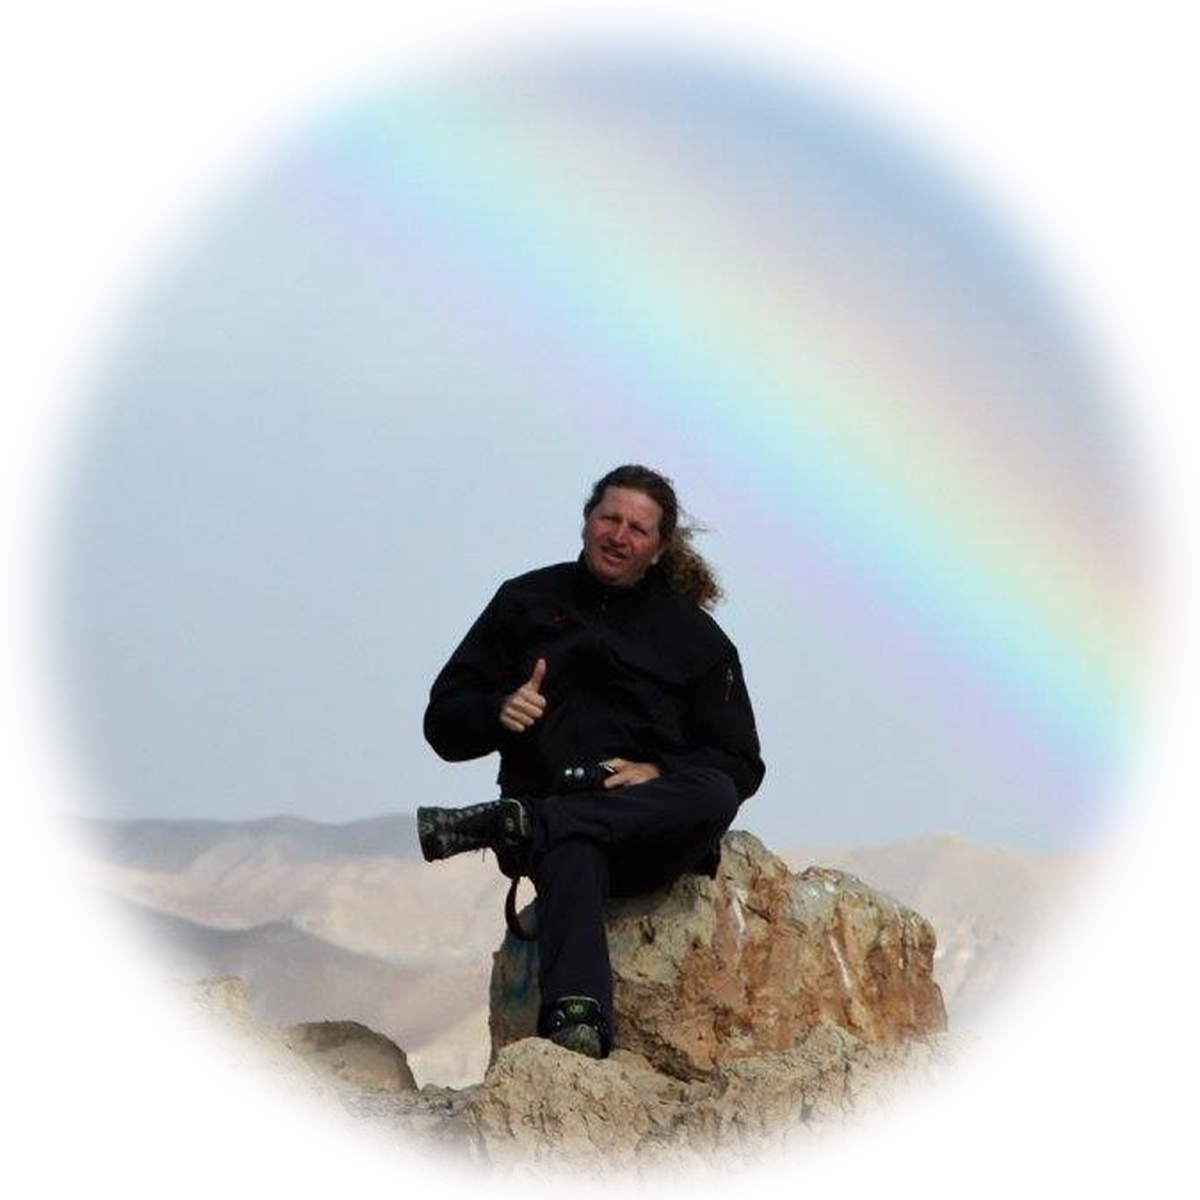 Ori sits on a rock with a rainbow behind